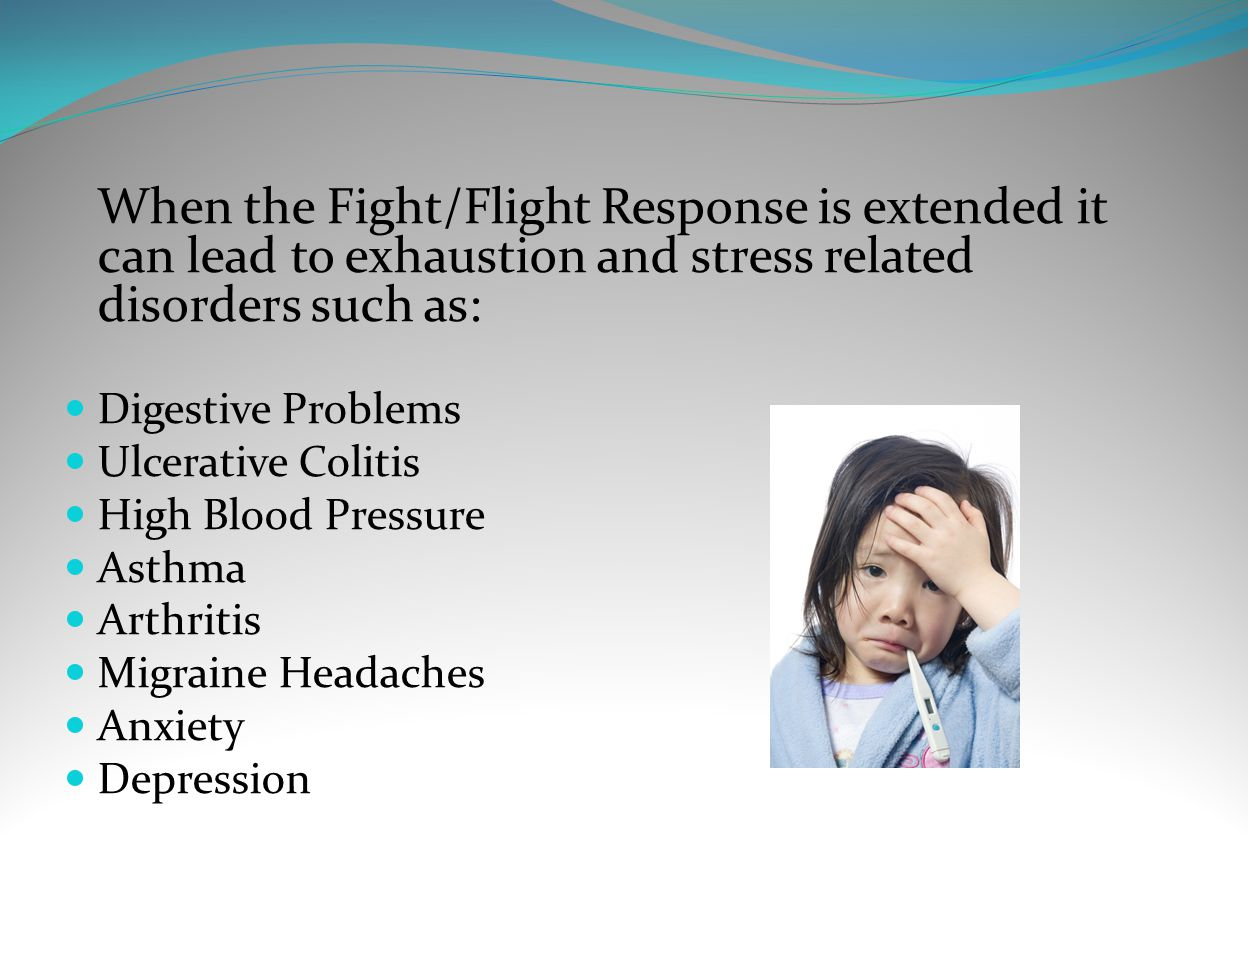 When the Fight/Flight Response is extended it can lead to exhaustion and stress related disorders such as: